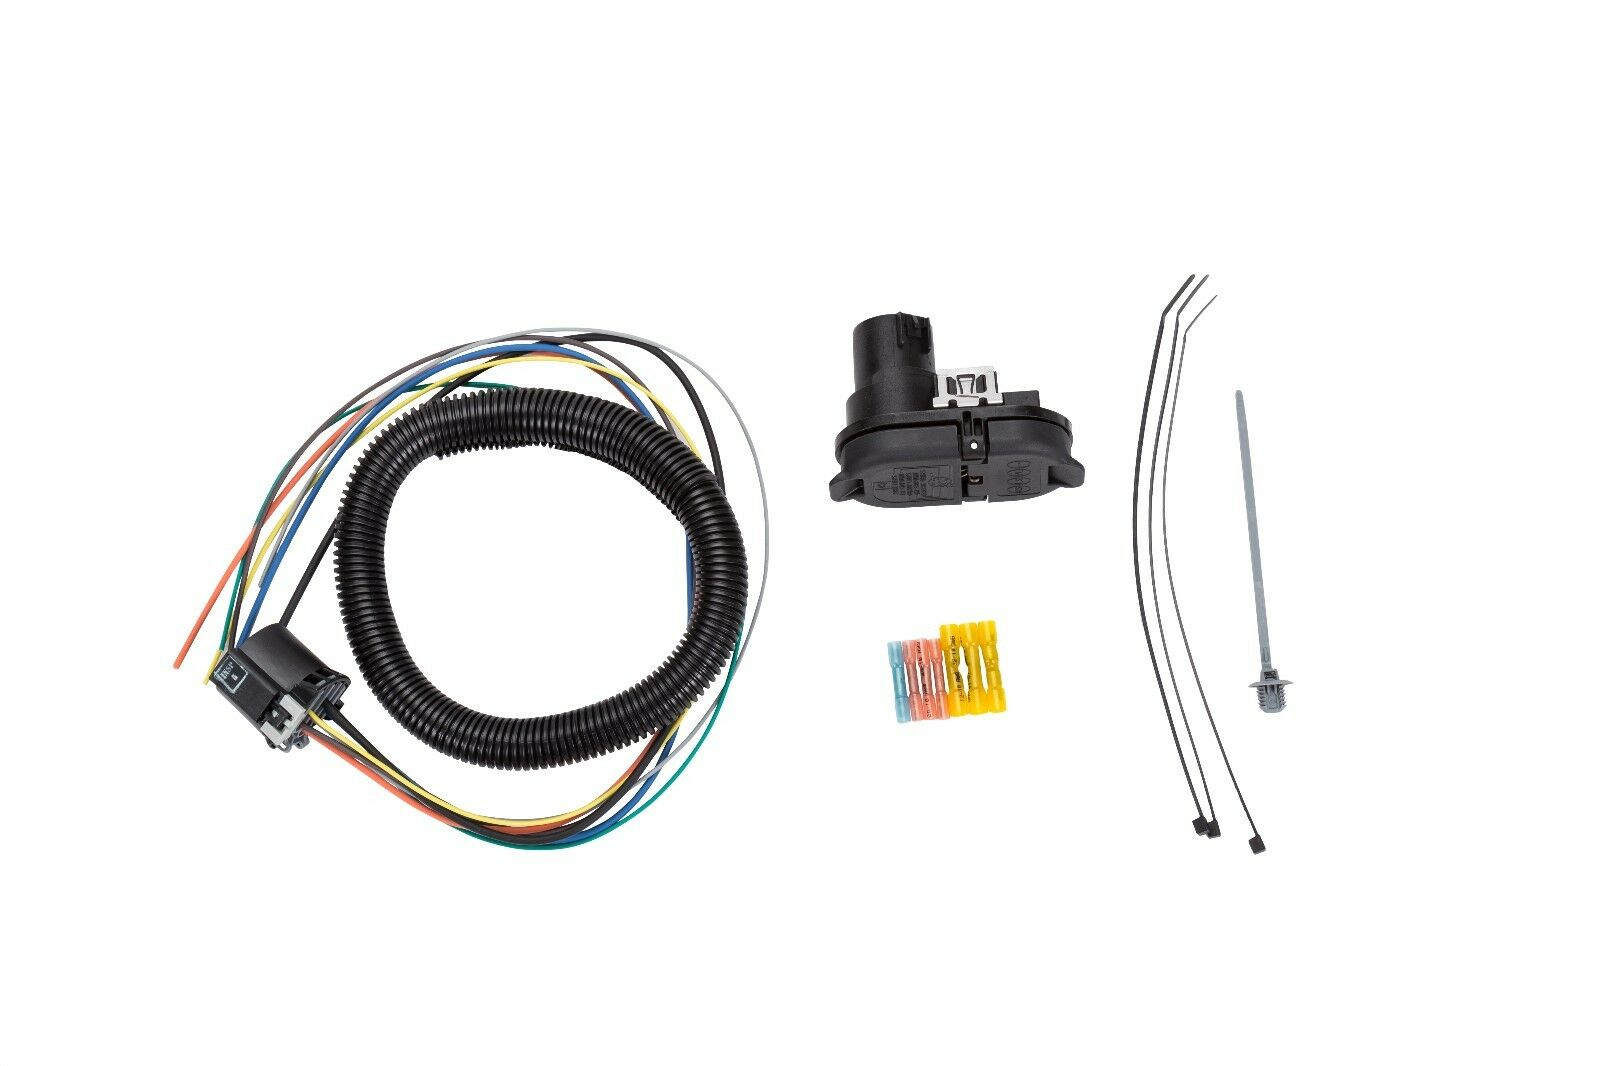 GM # 23455107 Trailer Wiring Harness Genuine OEM GM 2015-2018 Colorado  Canyon 1 of 4FREE Shipping See More